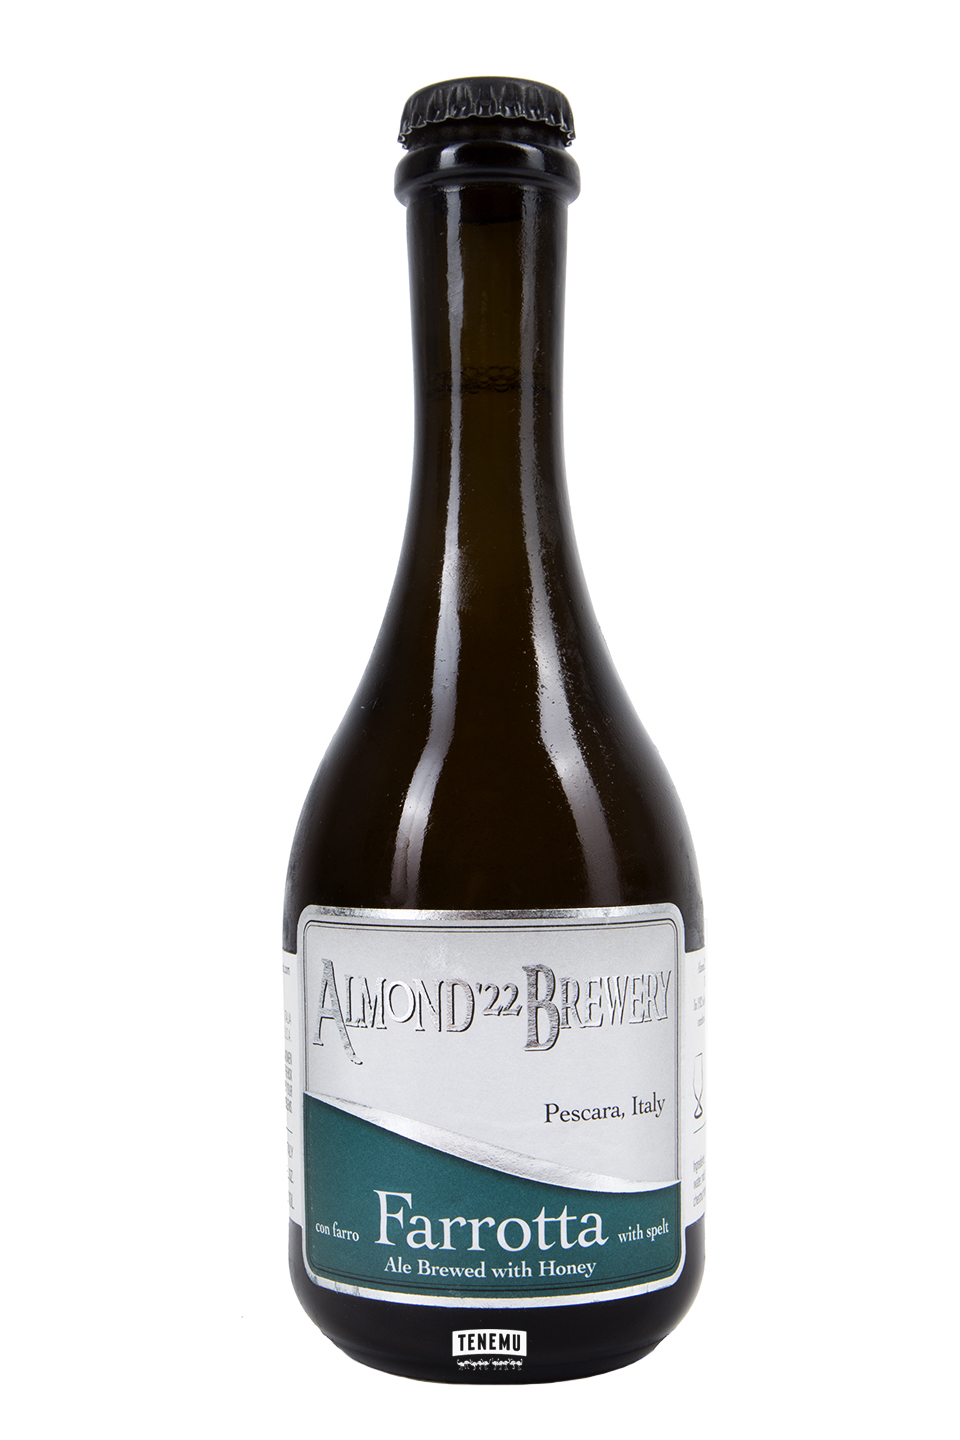 Birra Almond '22 Farrotta bottle